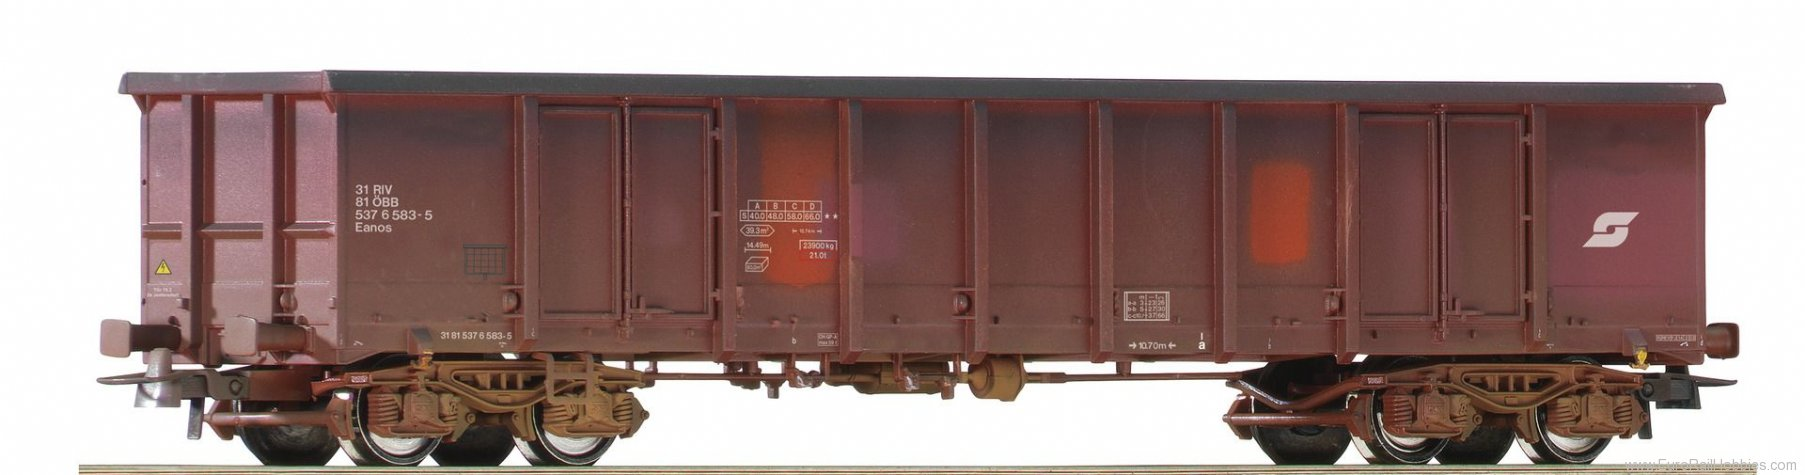 Roco 75991 31815377 101-5, open goods wagon weathered, O